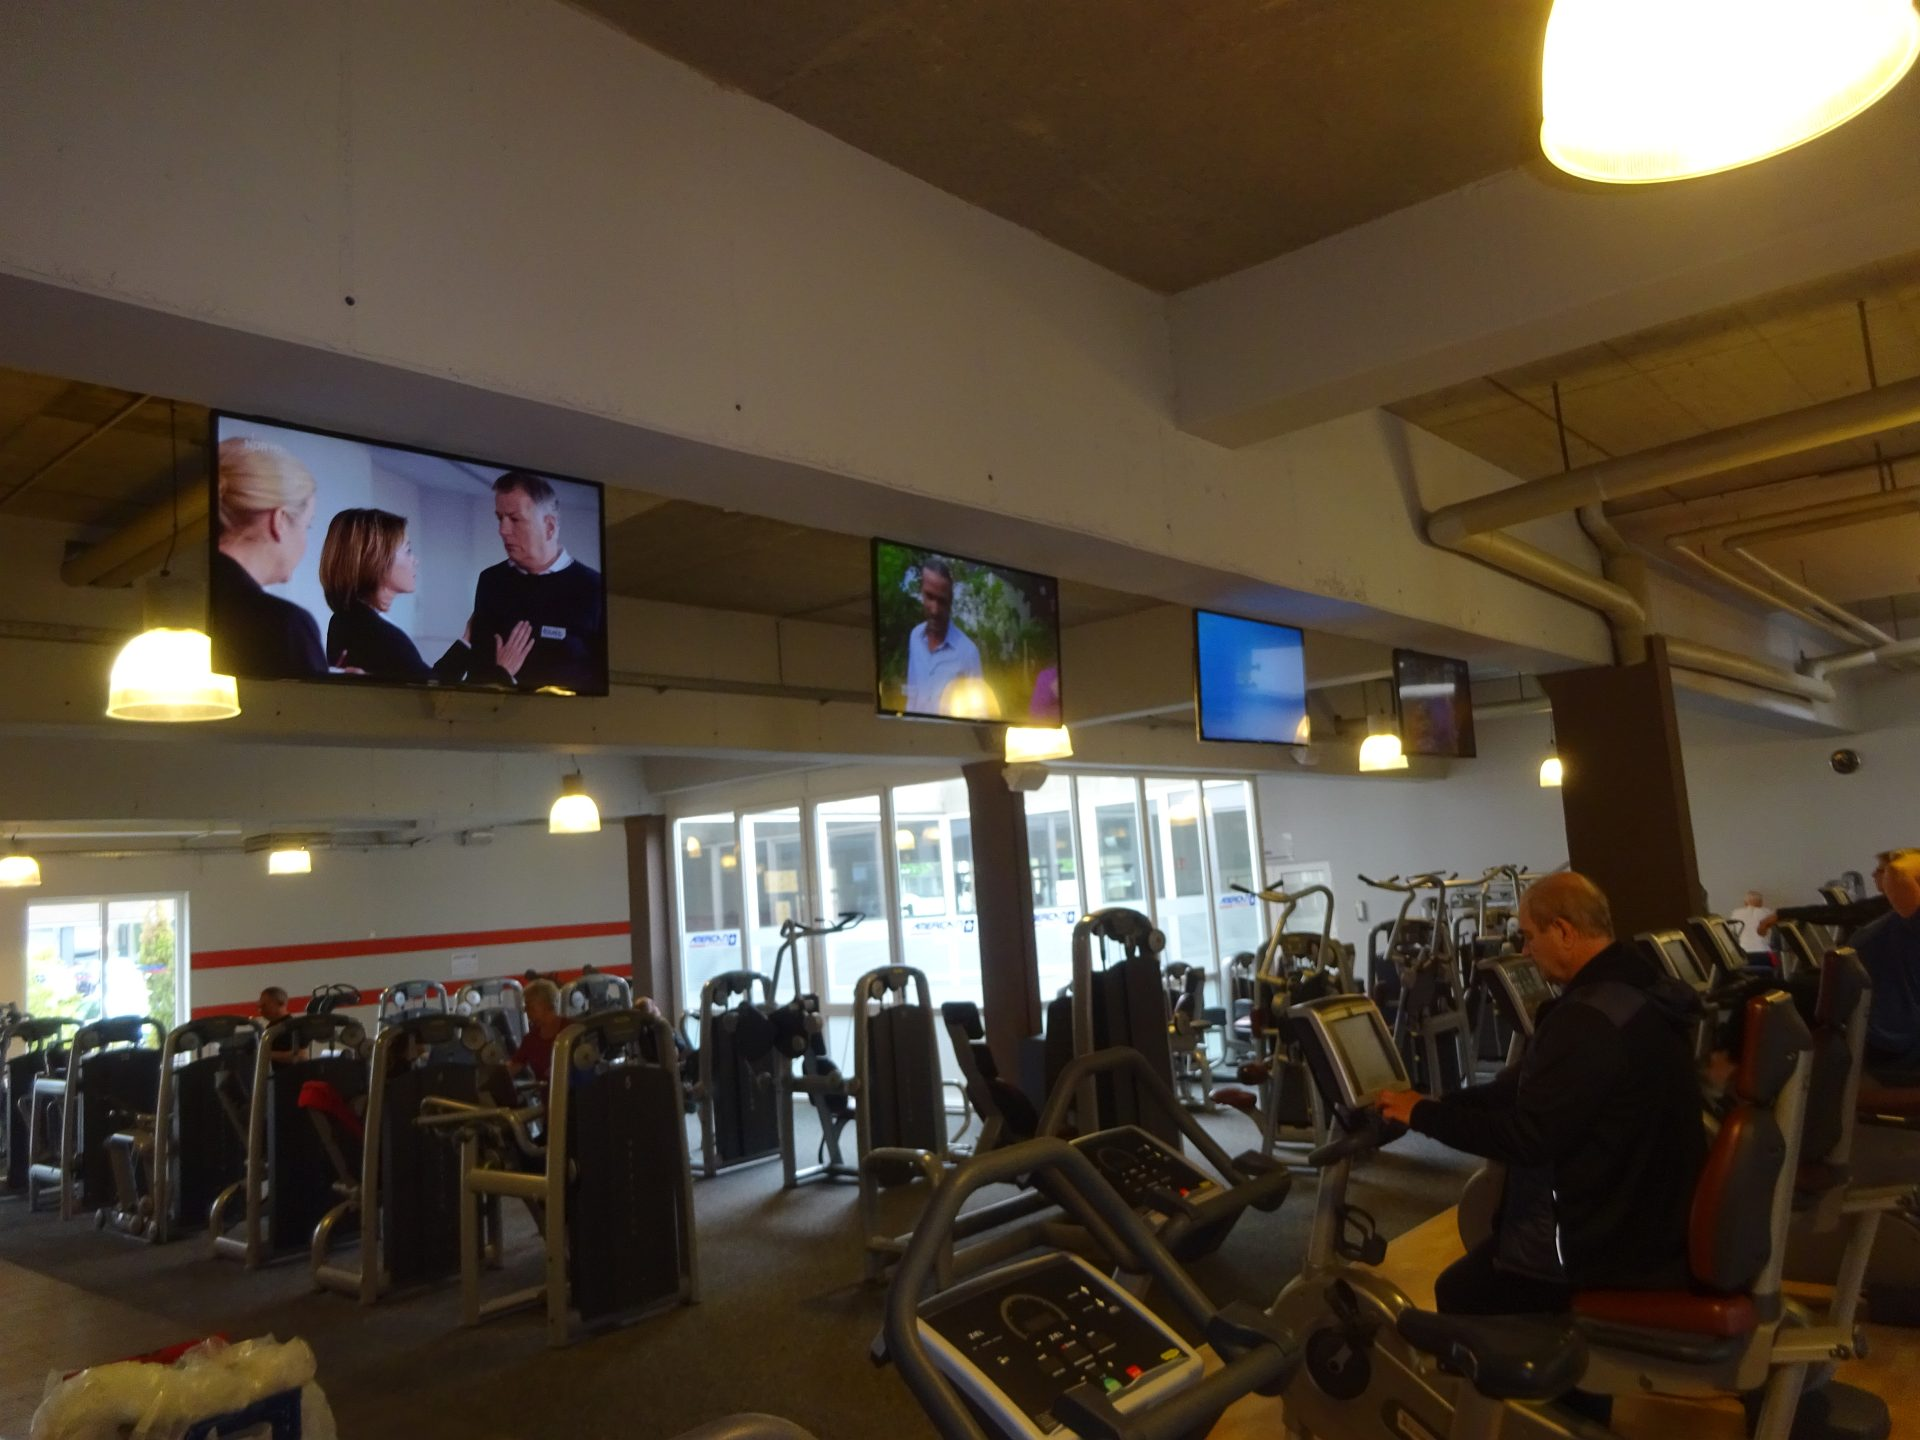 TV Installation Fitnesstudio